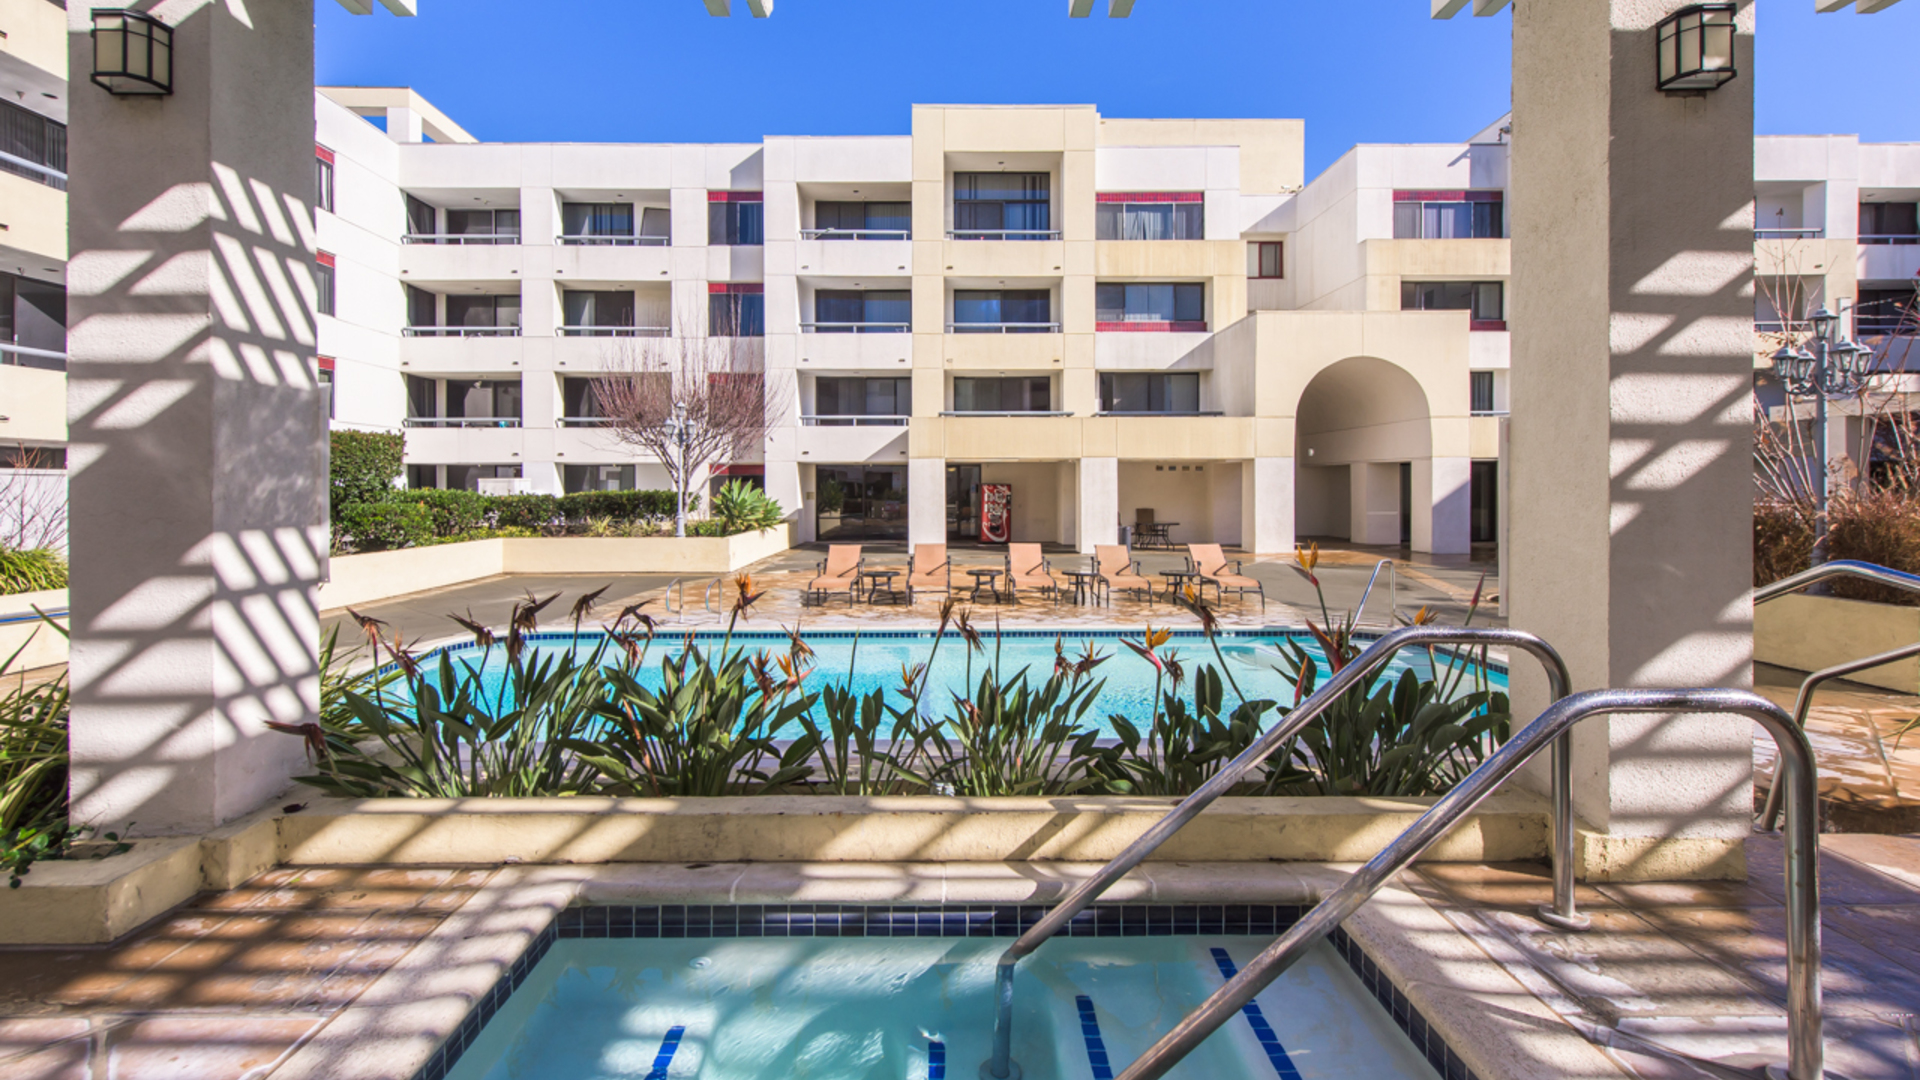 The Colonnade Apartments For Rent In San Jose, CA